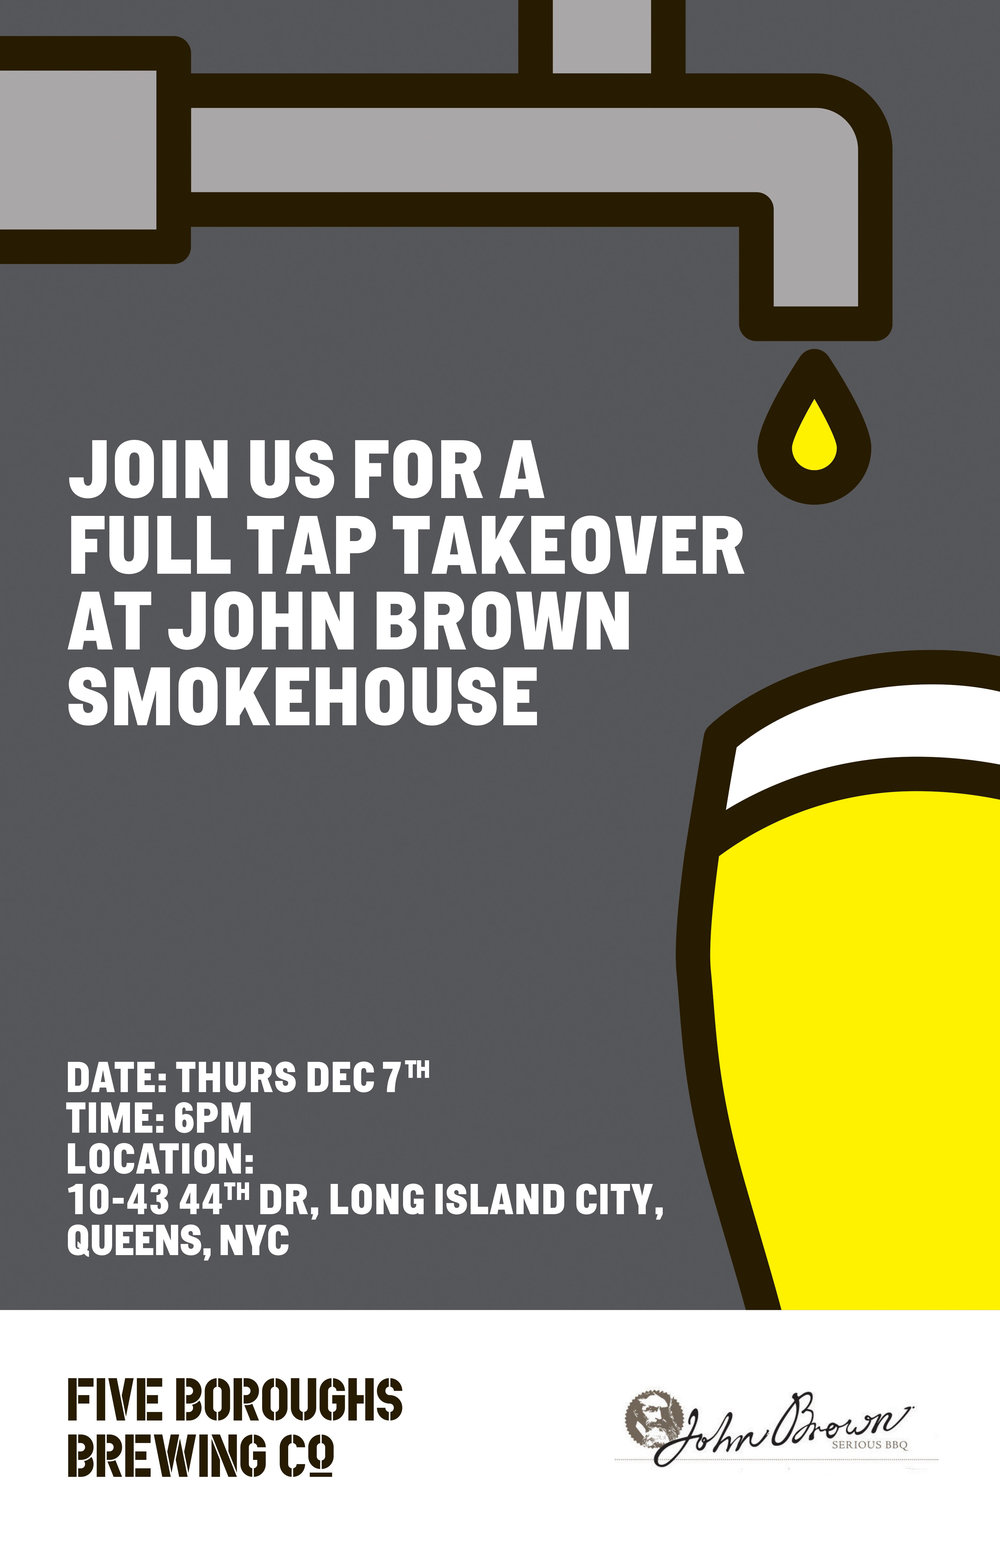 John Brown Smokehouse.jpg